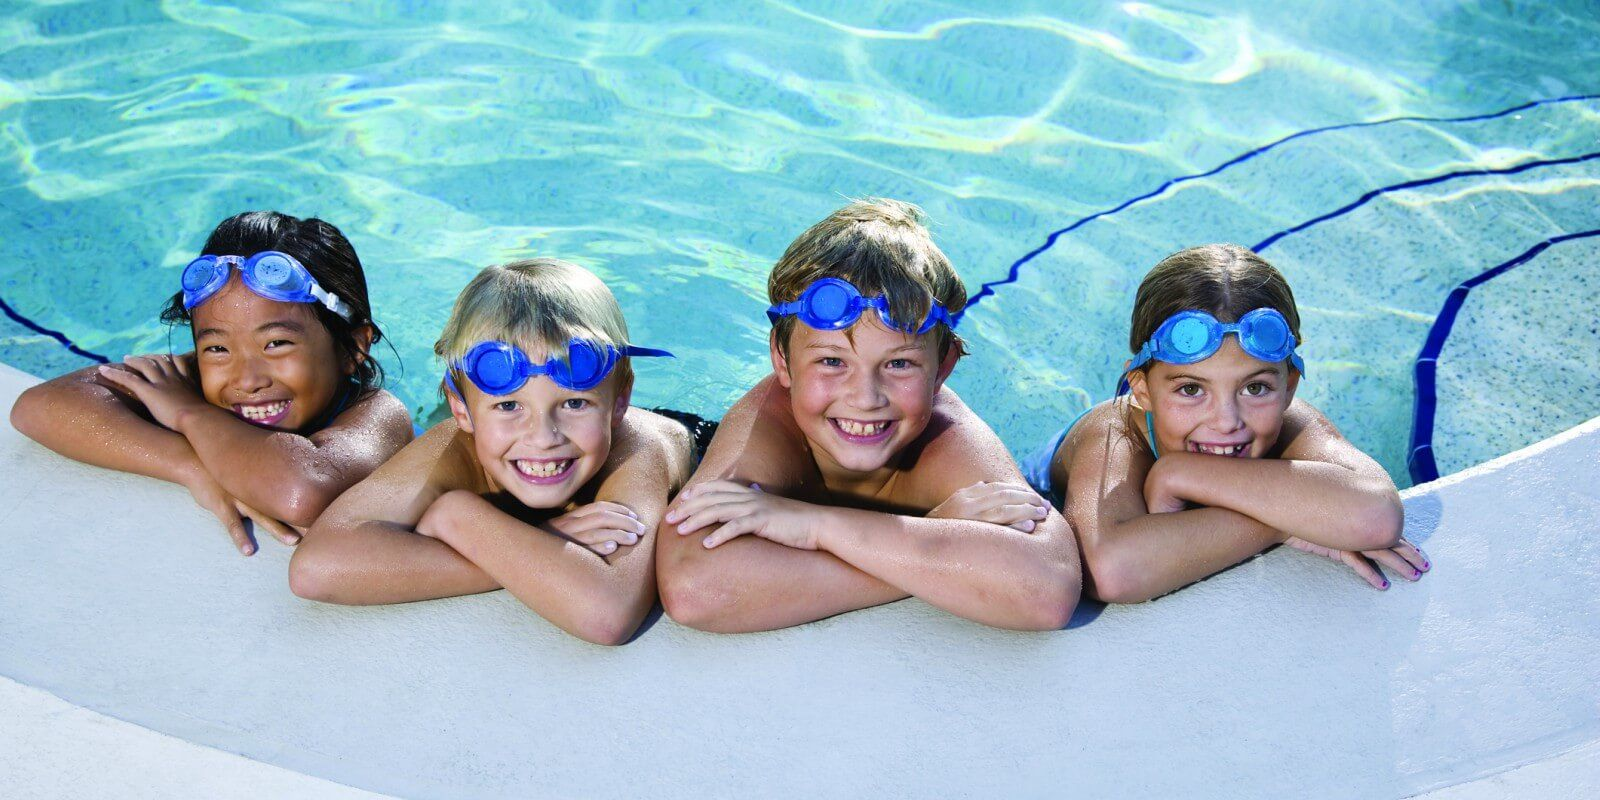 Our Swimming Pool Hours For Children Are 10am till 7pm, 7 Days A Week.